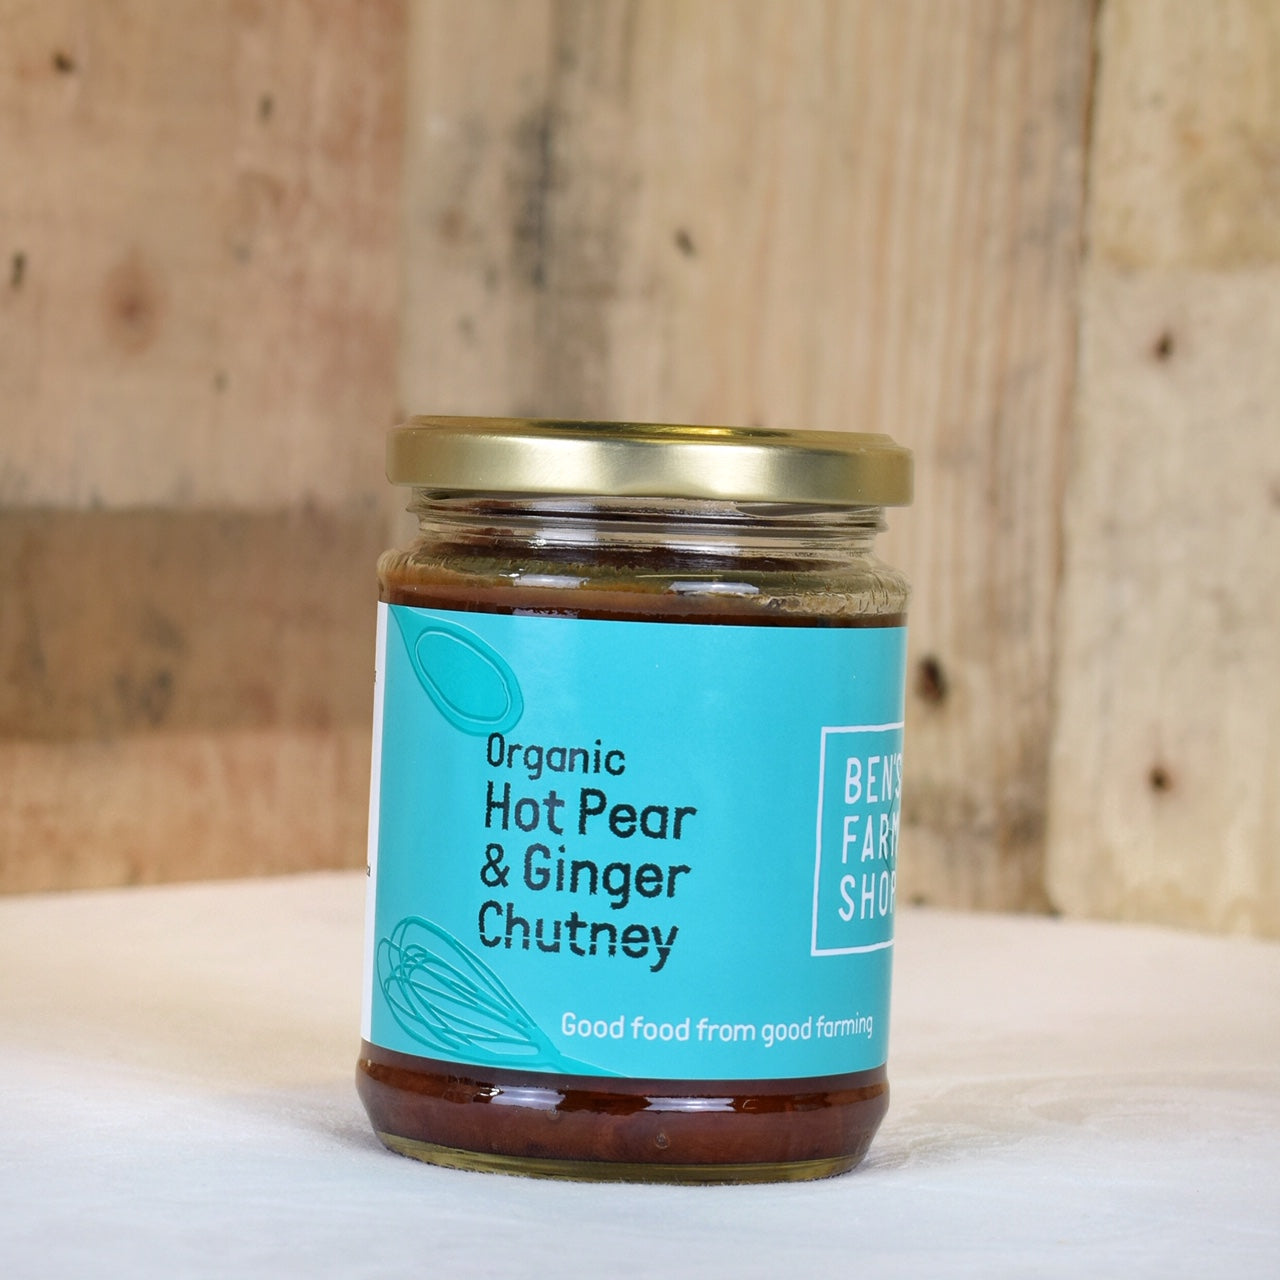 Hot pear & ginger chutney